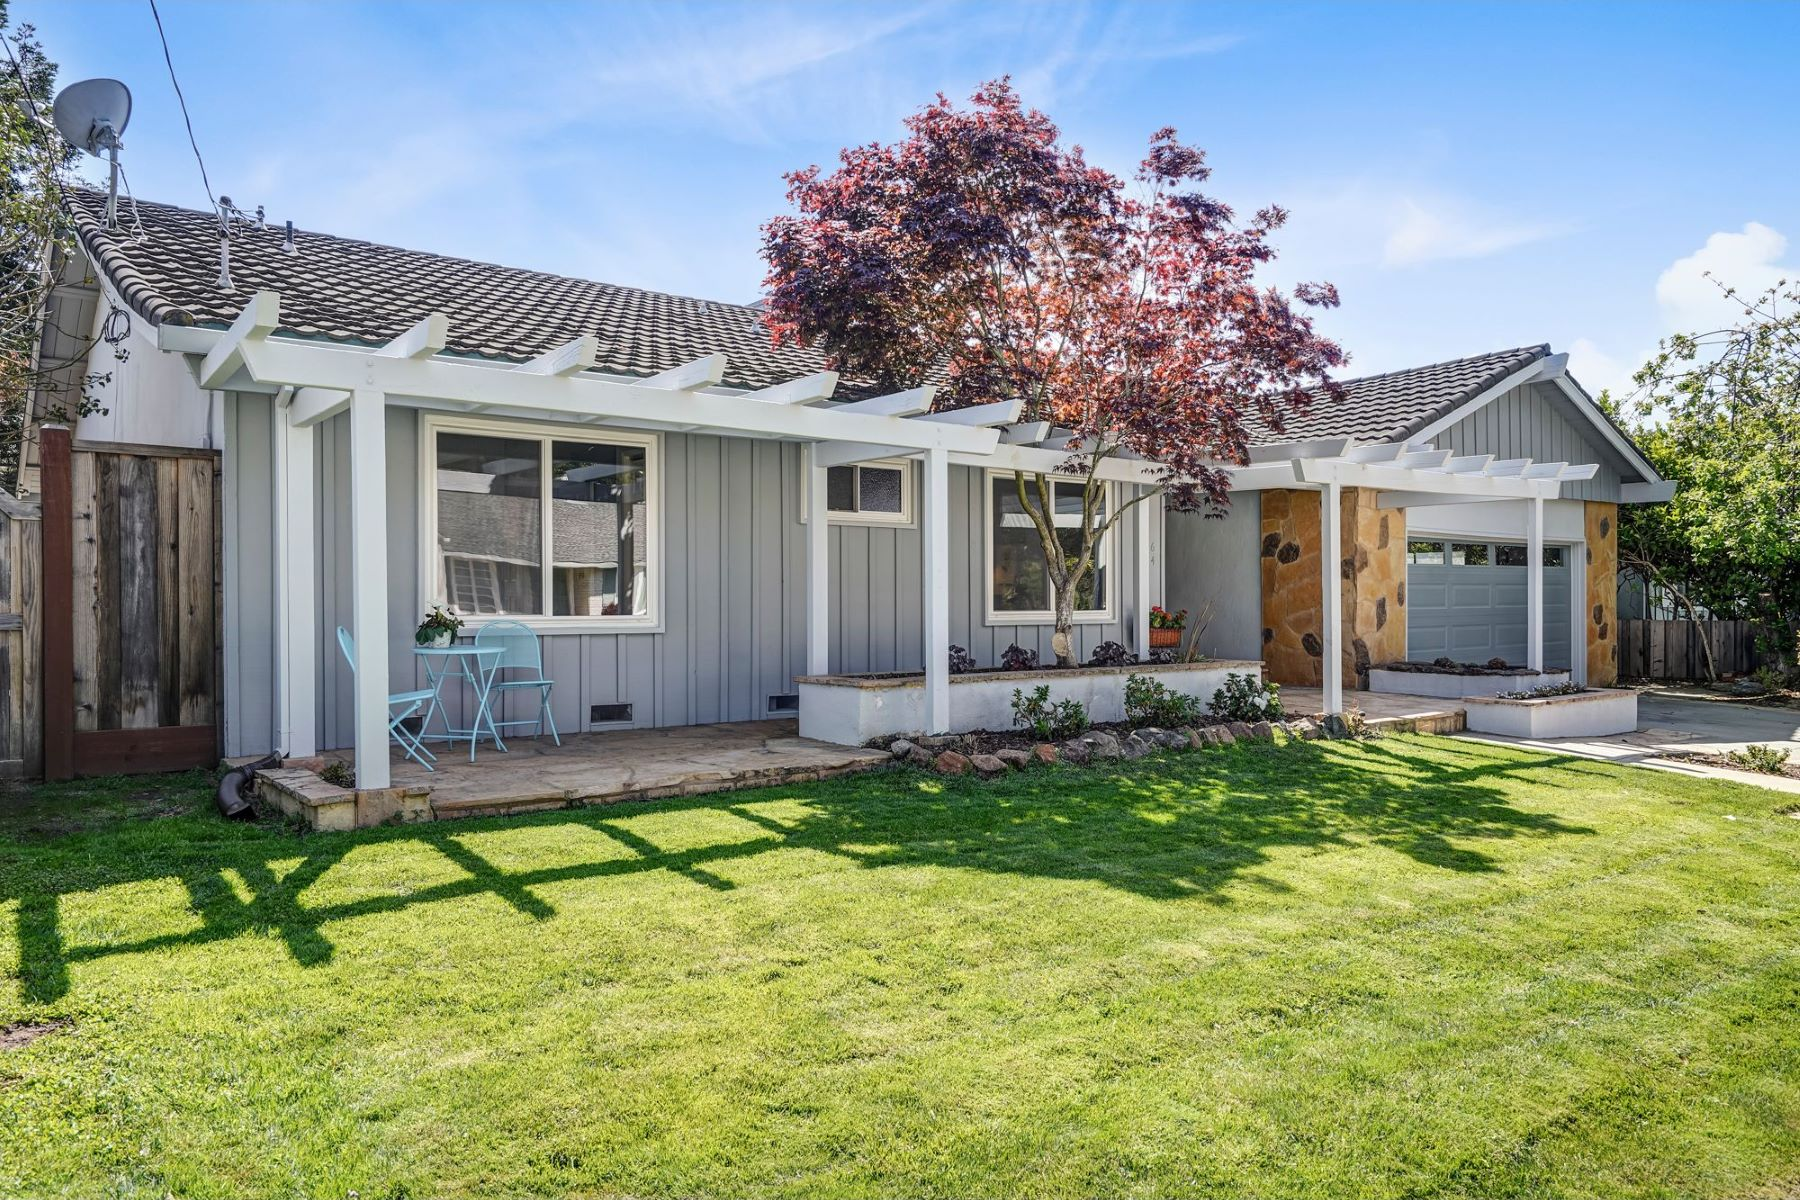 Single Family Home for Active at Elegant Home in a Desirable Neighborhood 64 Valley View Court San Mateo, California 94402 United States